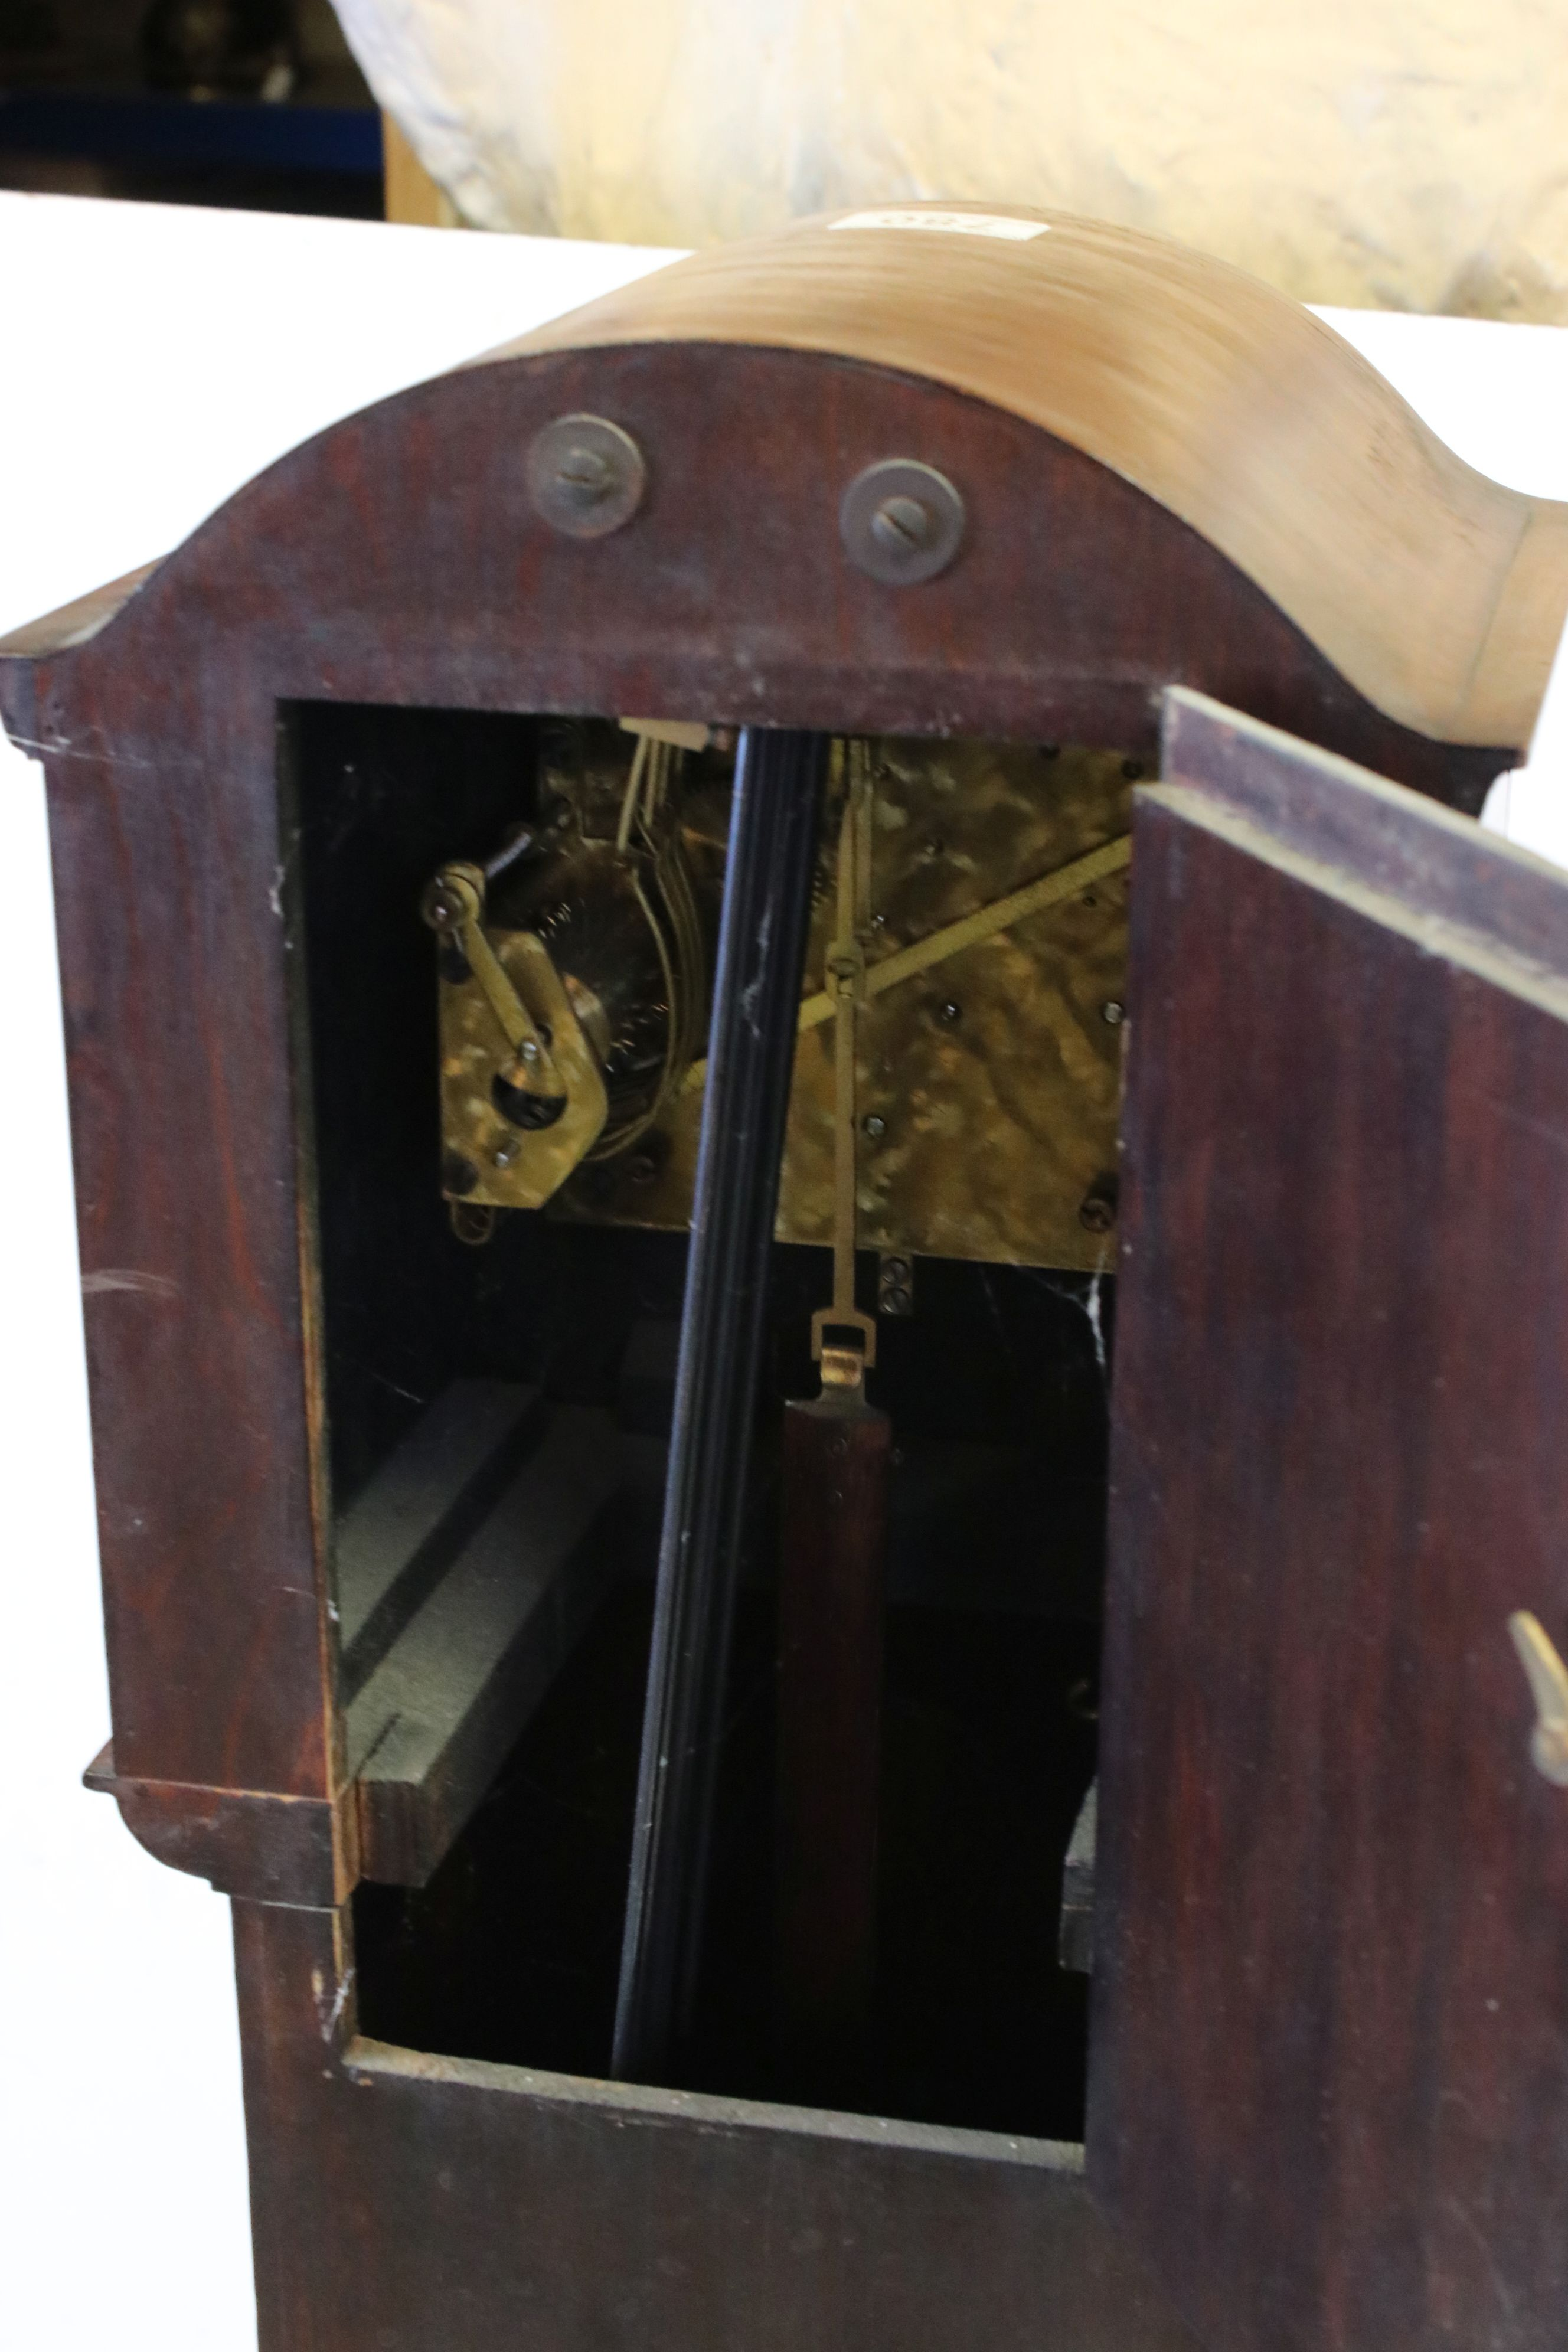 Early 20th century Mahogany Cased Grandmother Clock, the silvered face with Arabic numerals and - Image 3 of 3